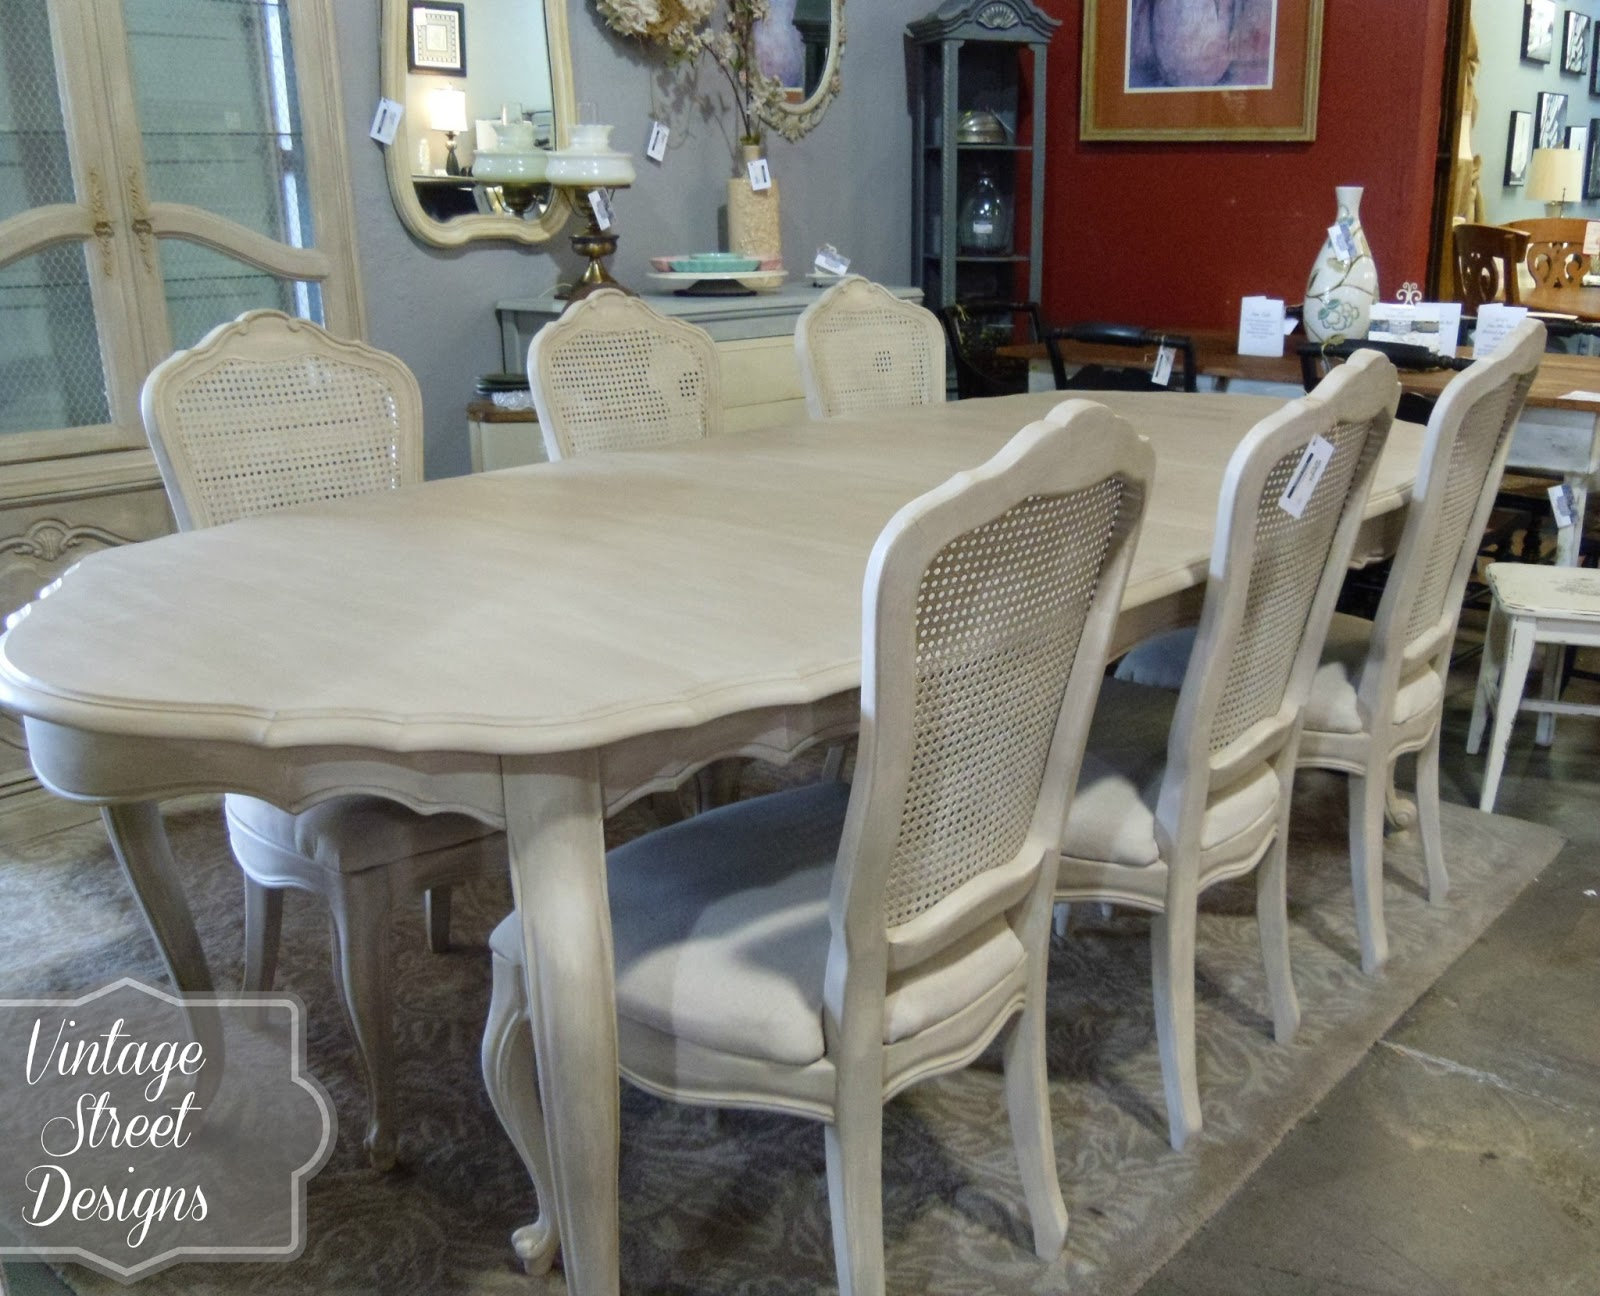 French Provincial Dining Room Part 1